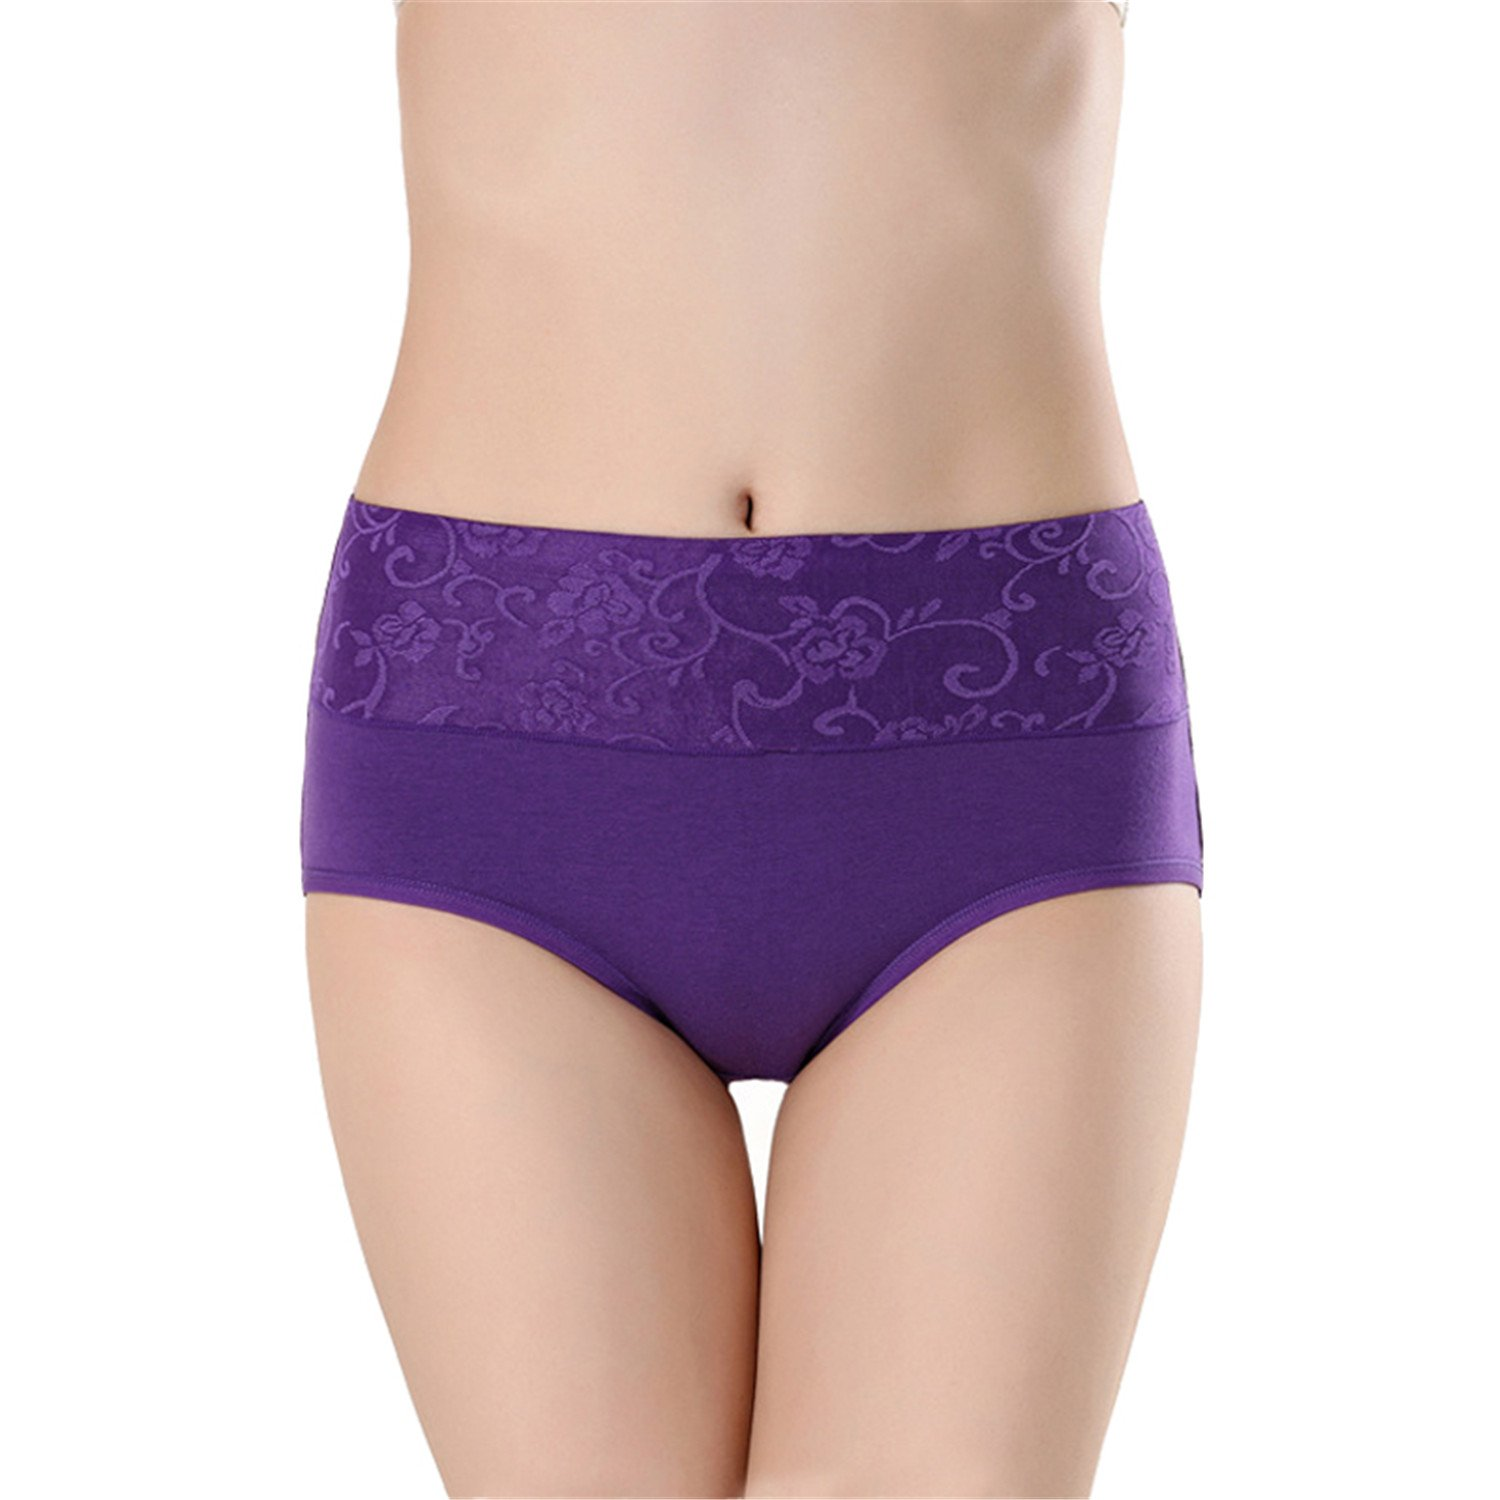 Panties Underwear Women Briefs Sexy Lingeries G-String Pink purple M at Amazon Womens Clothing store: